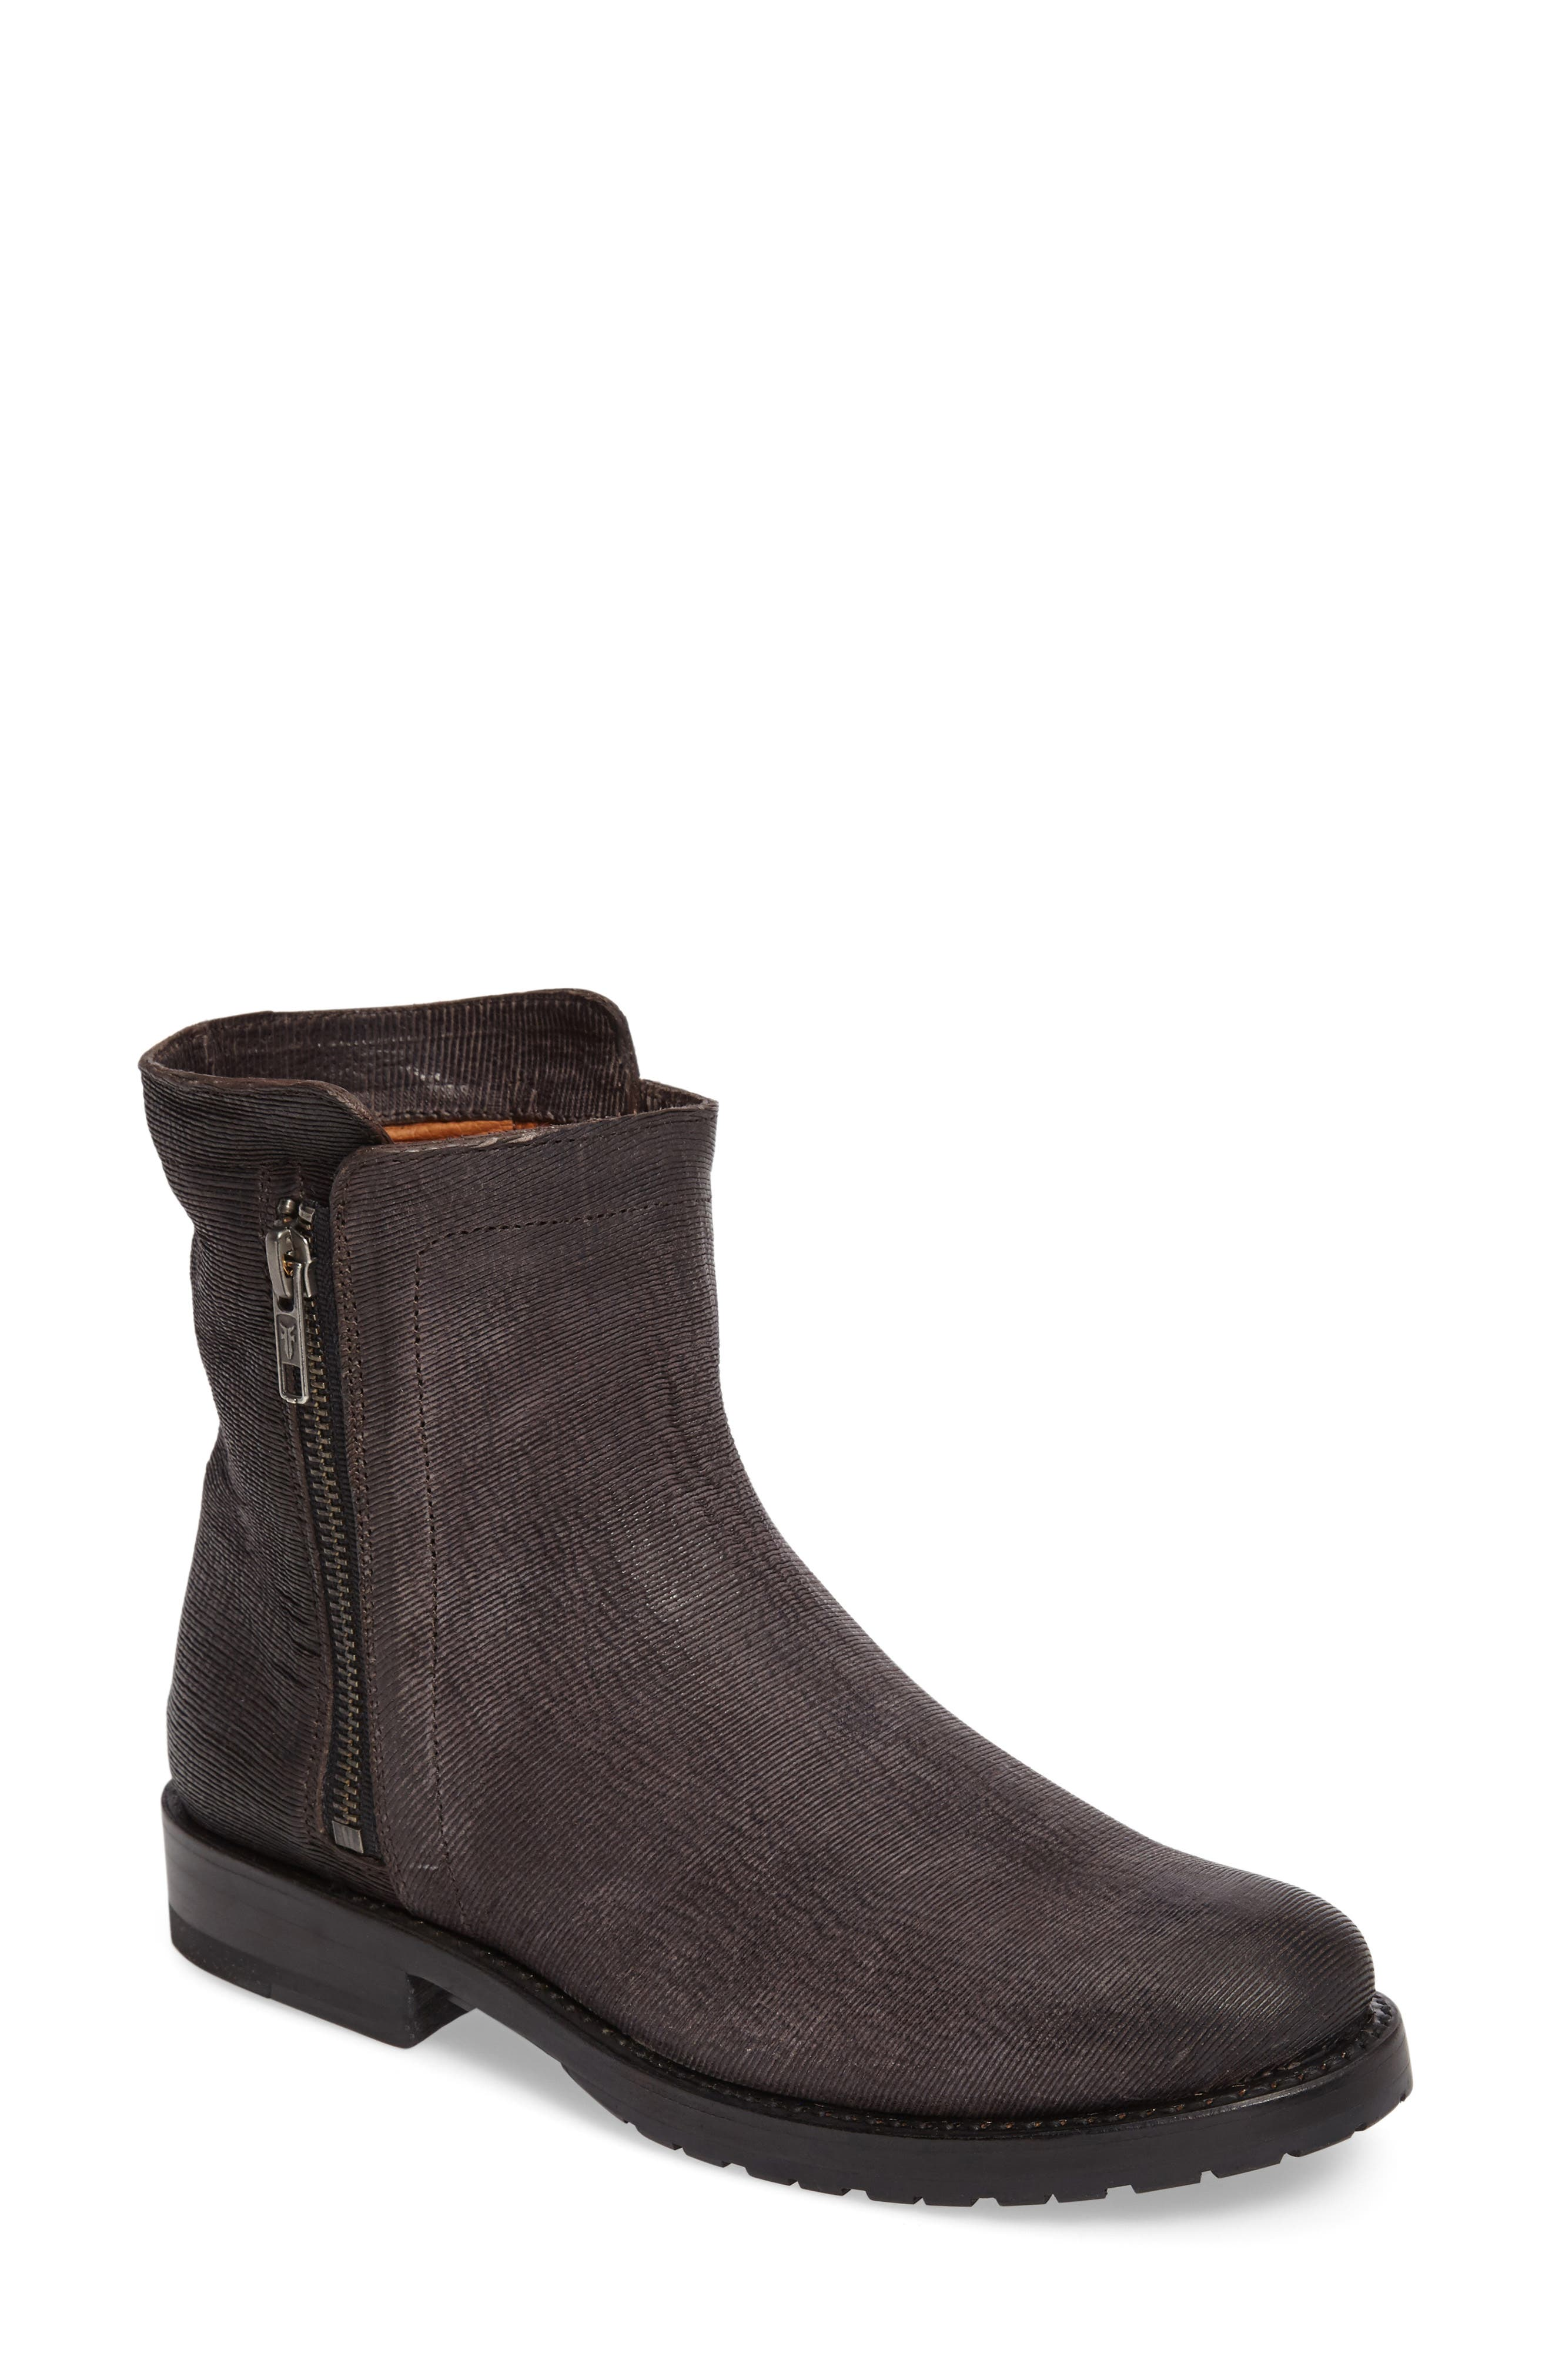 Alternate Image 1 Selected - Frye Natalie Textured Double Zip Bootie (Women)